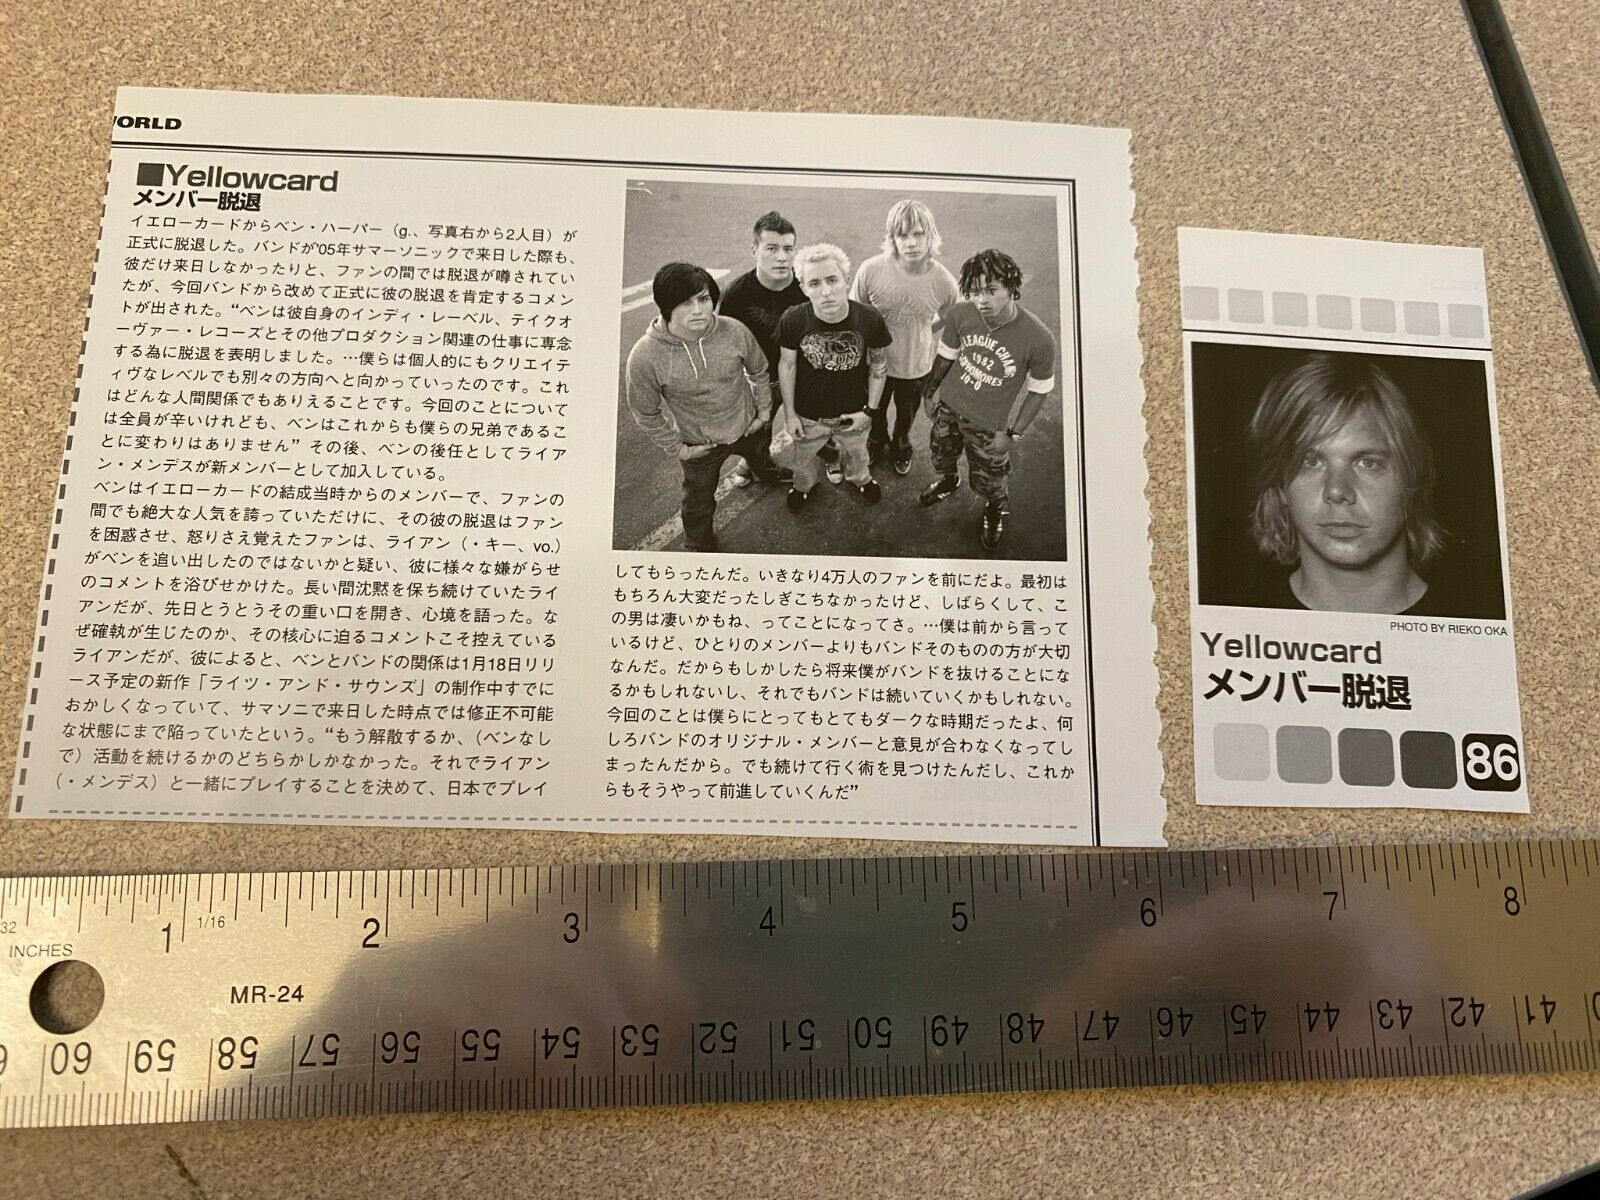 Yellowcard Rock Band Magazine Clipping Cutting Photos From Japan - $5.00